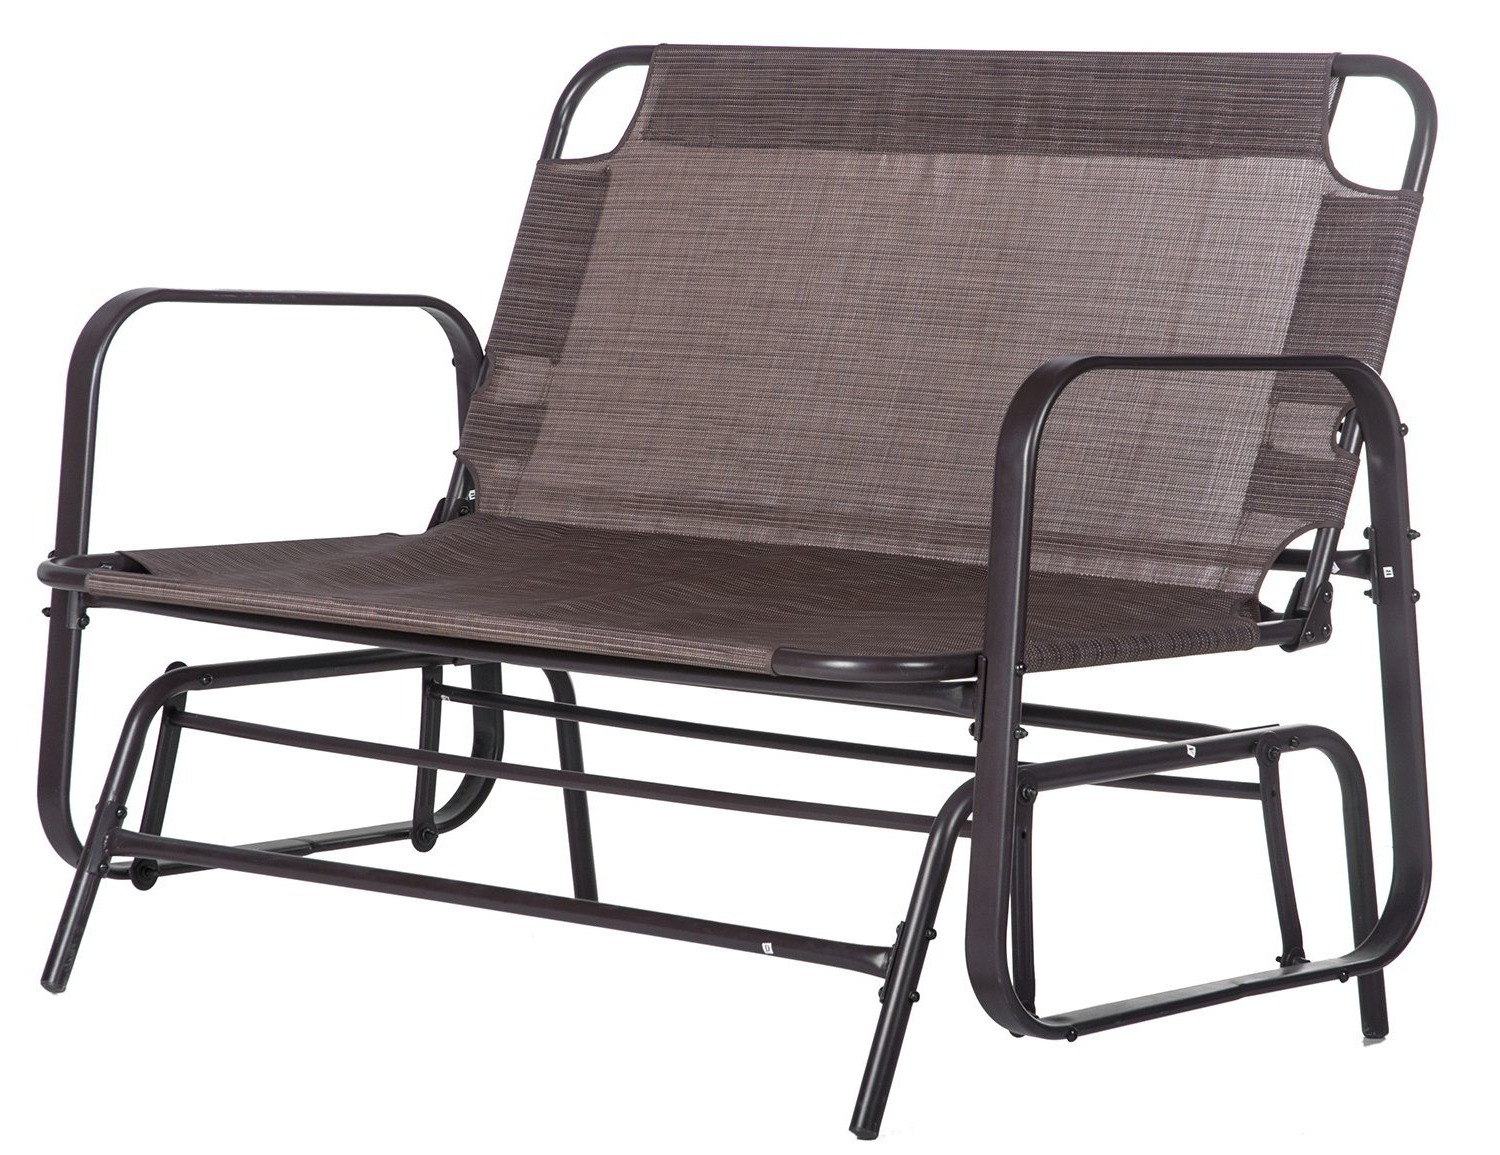 Buy Merax Patio Loveseat Glider Rocking Chair Garden Outdoor With Regard To Newest Glider Benches With Cushion (Gallery 12 of 30)